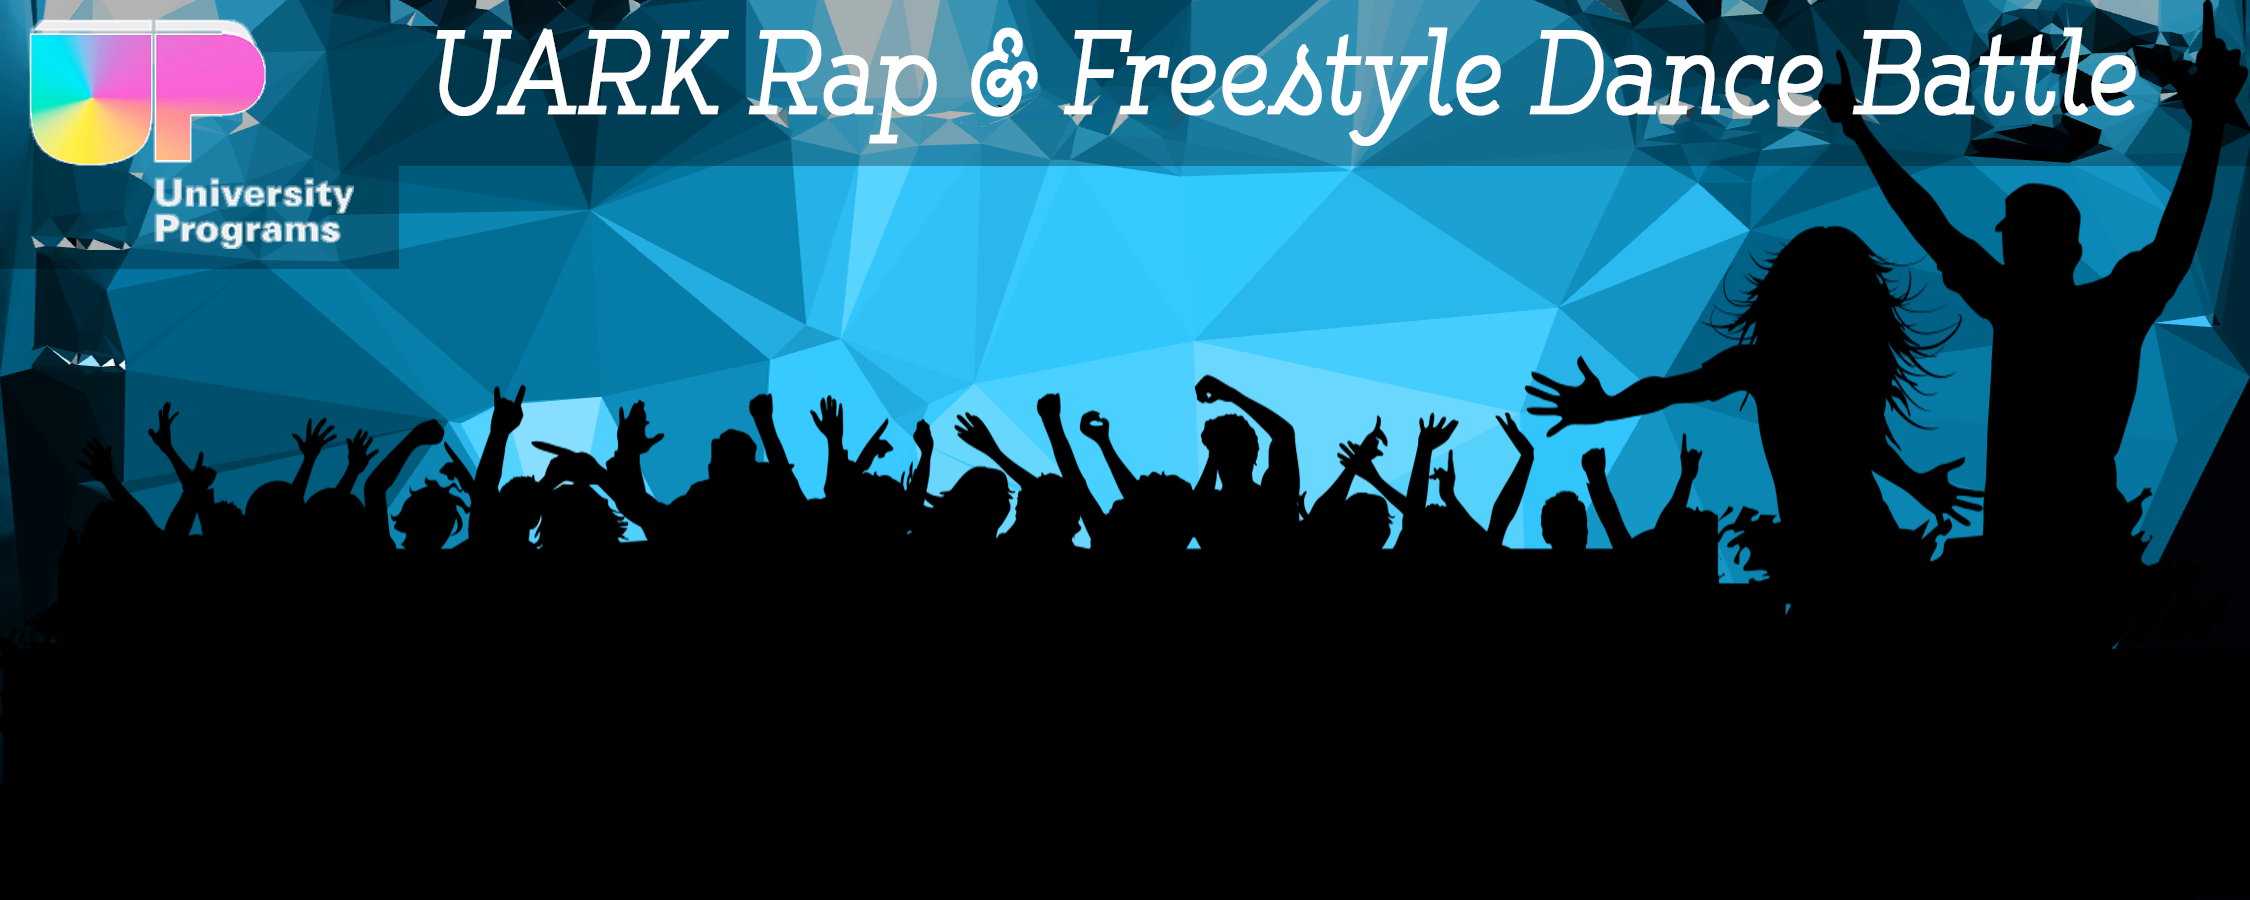 UARK Rap & Freestyle Dance Battle